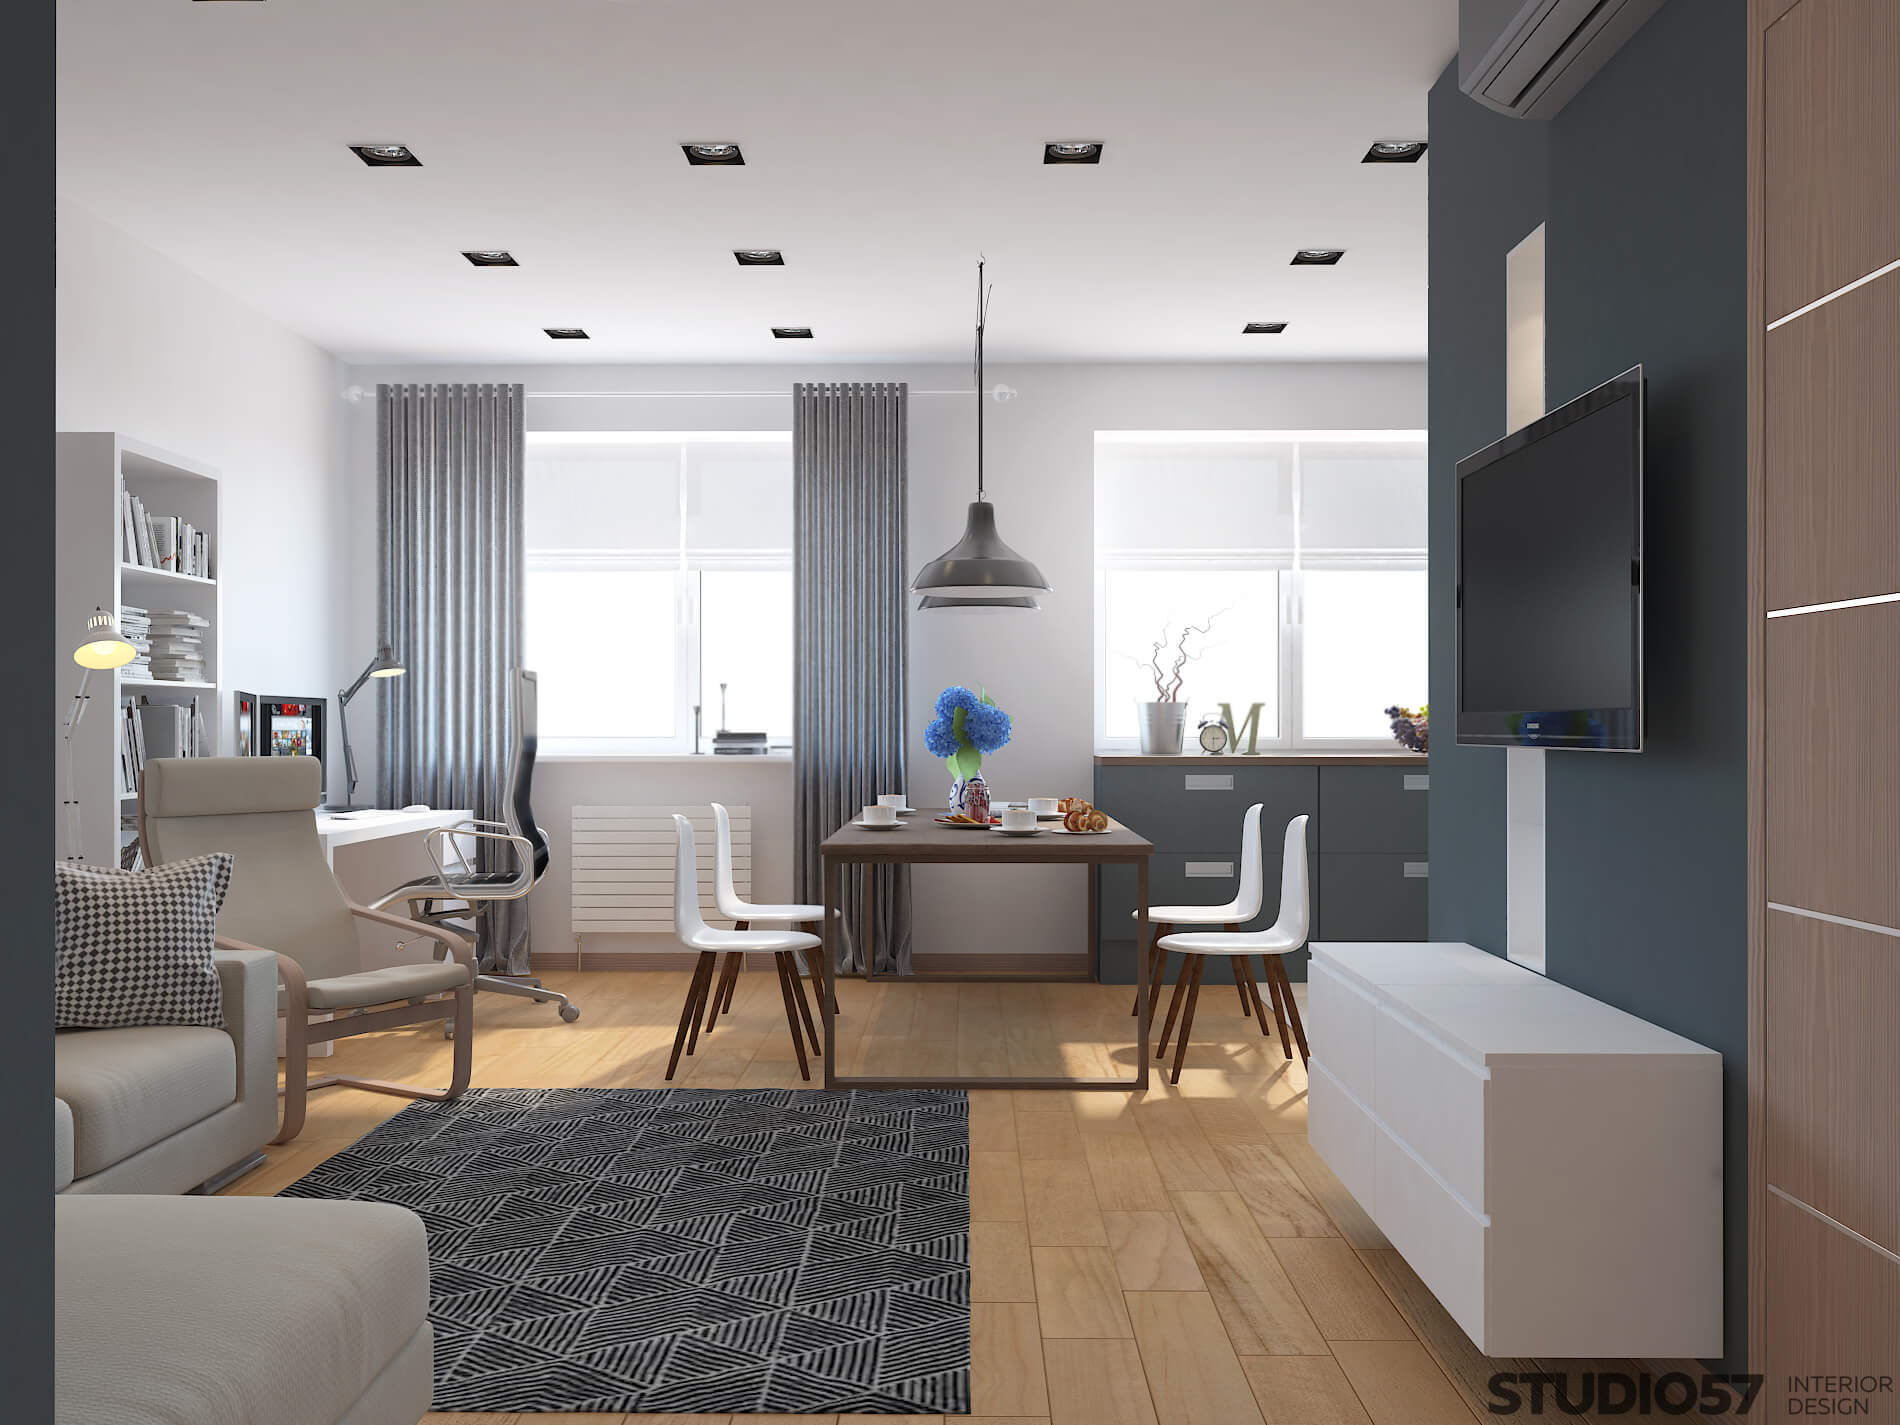 Dining area in the interior of the blue apartment